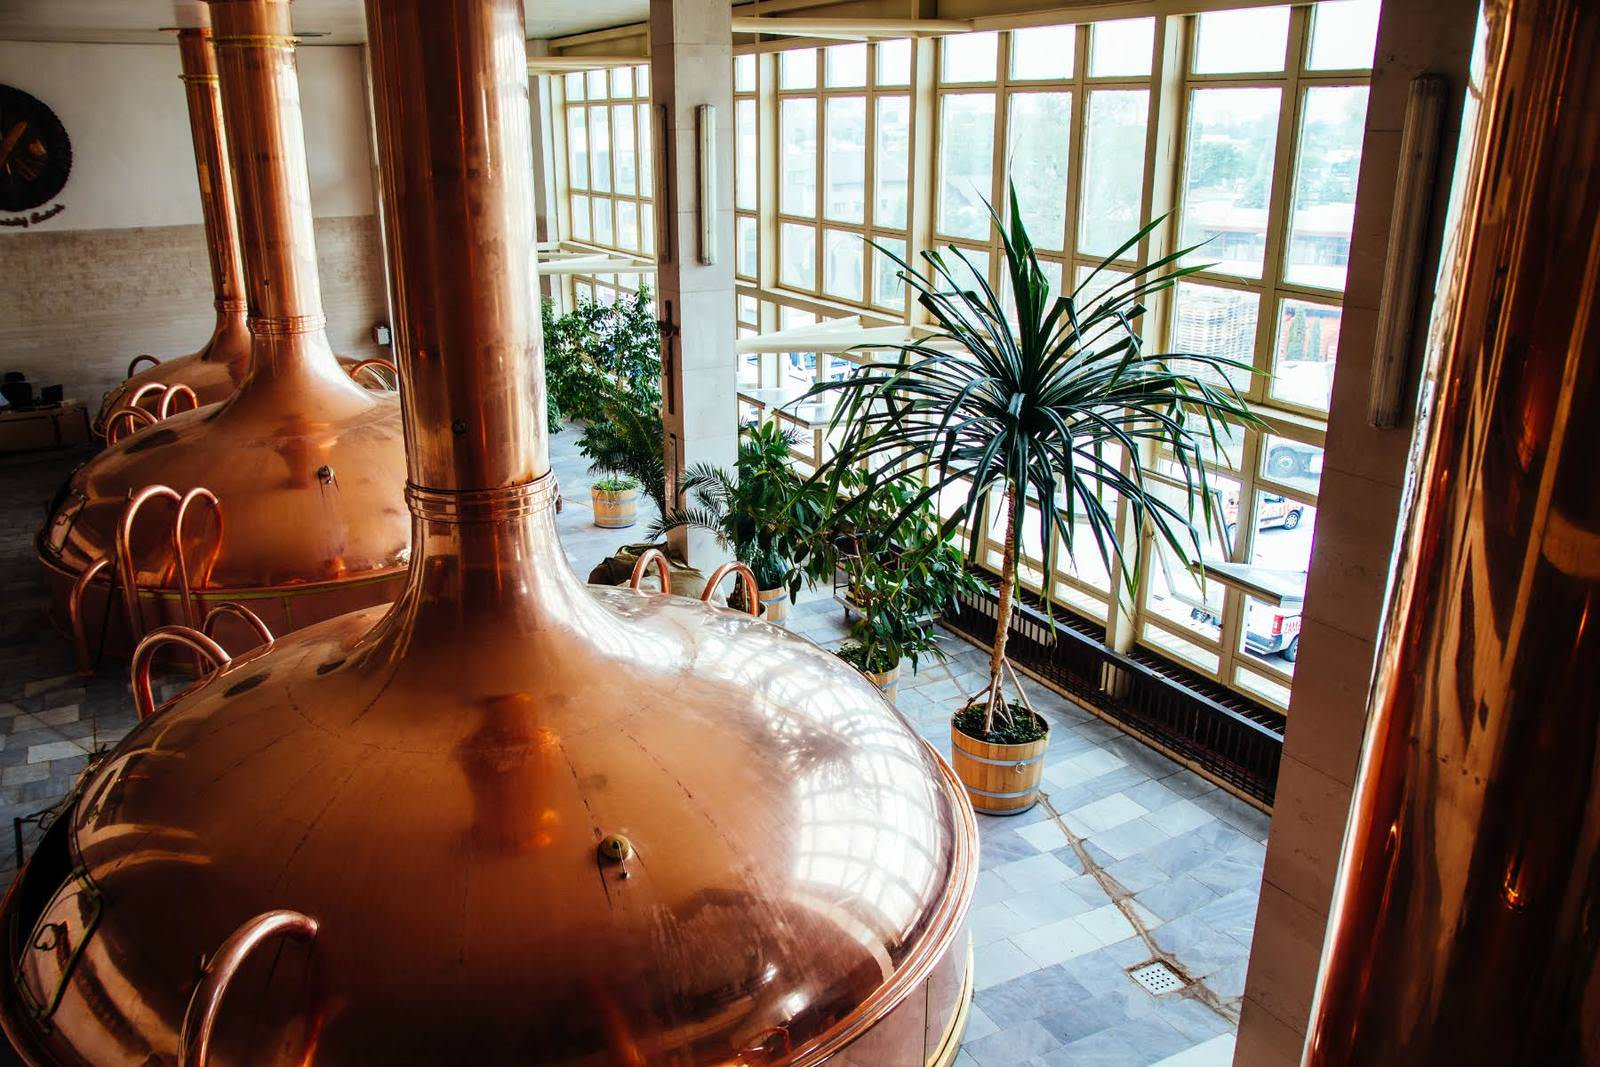 the-brew-kettles-in-the-brewhouse-budweiser-budvar-brewery